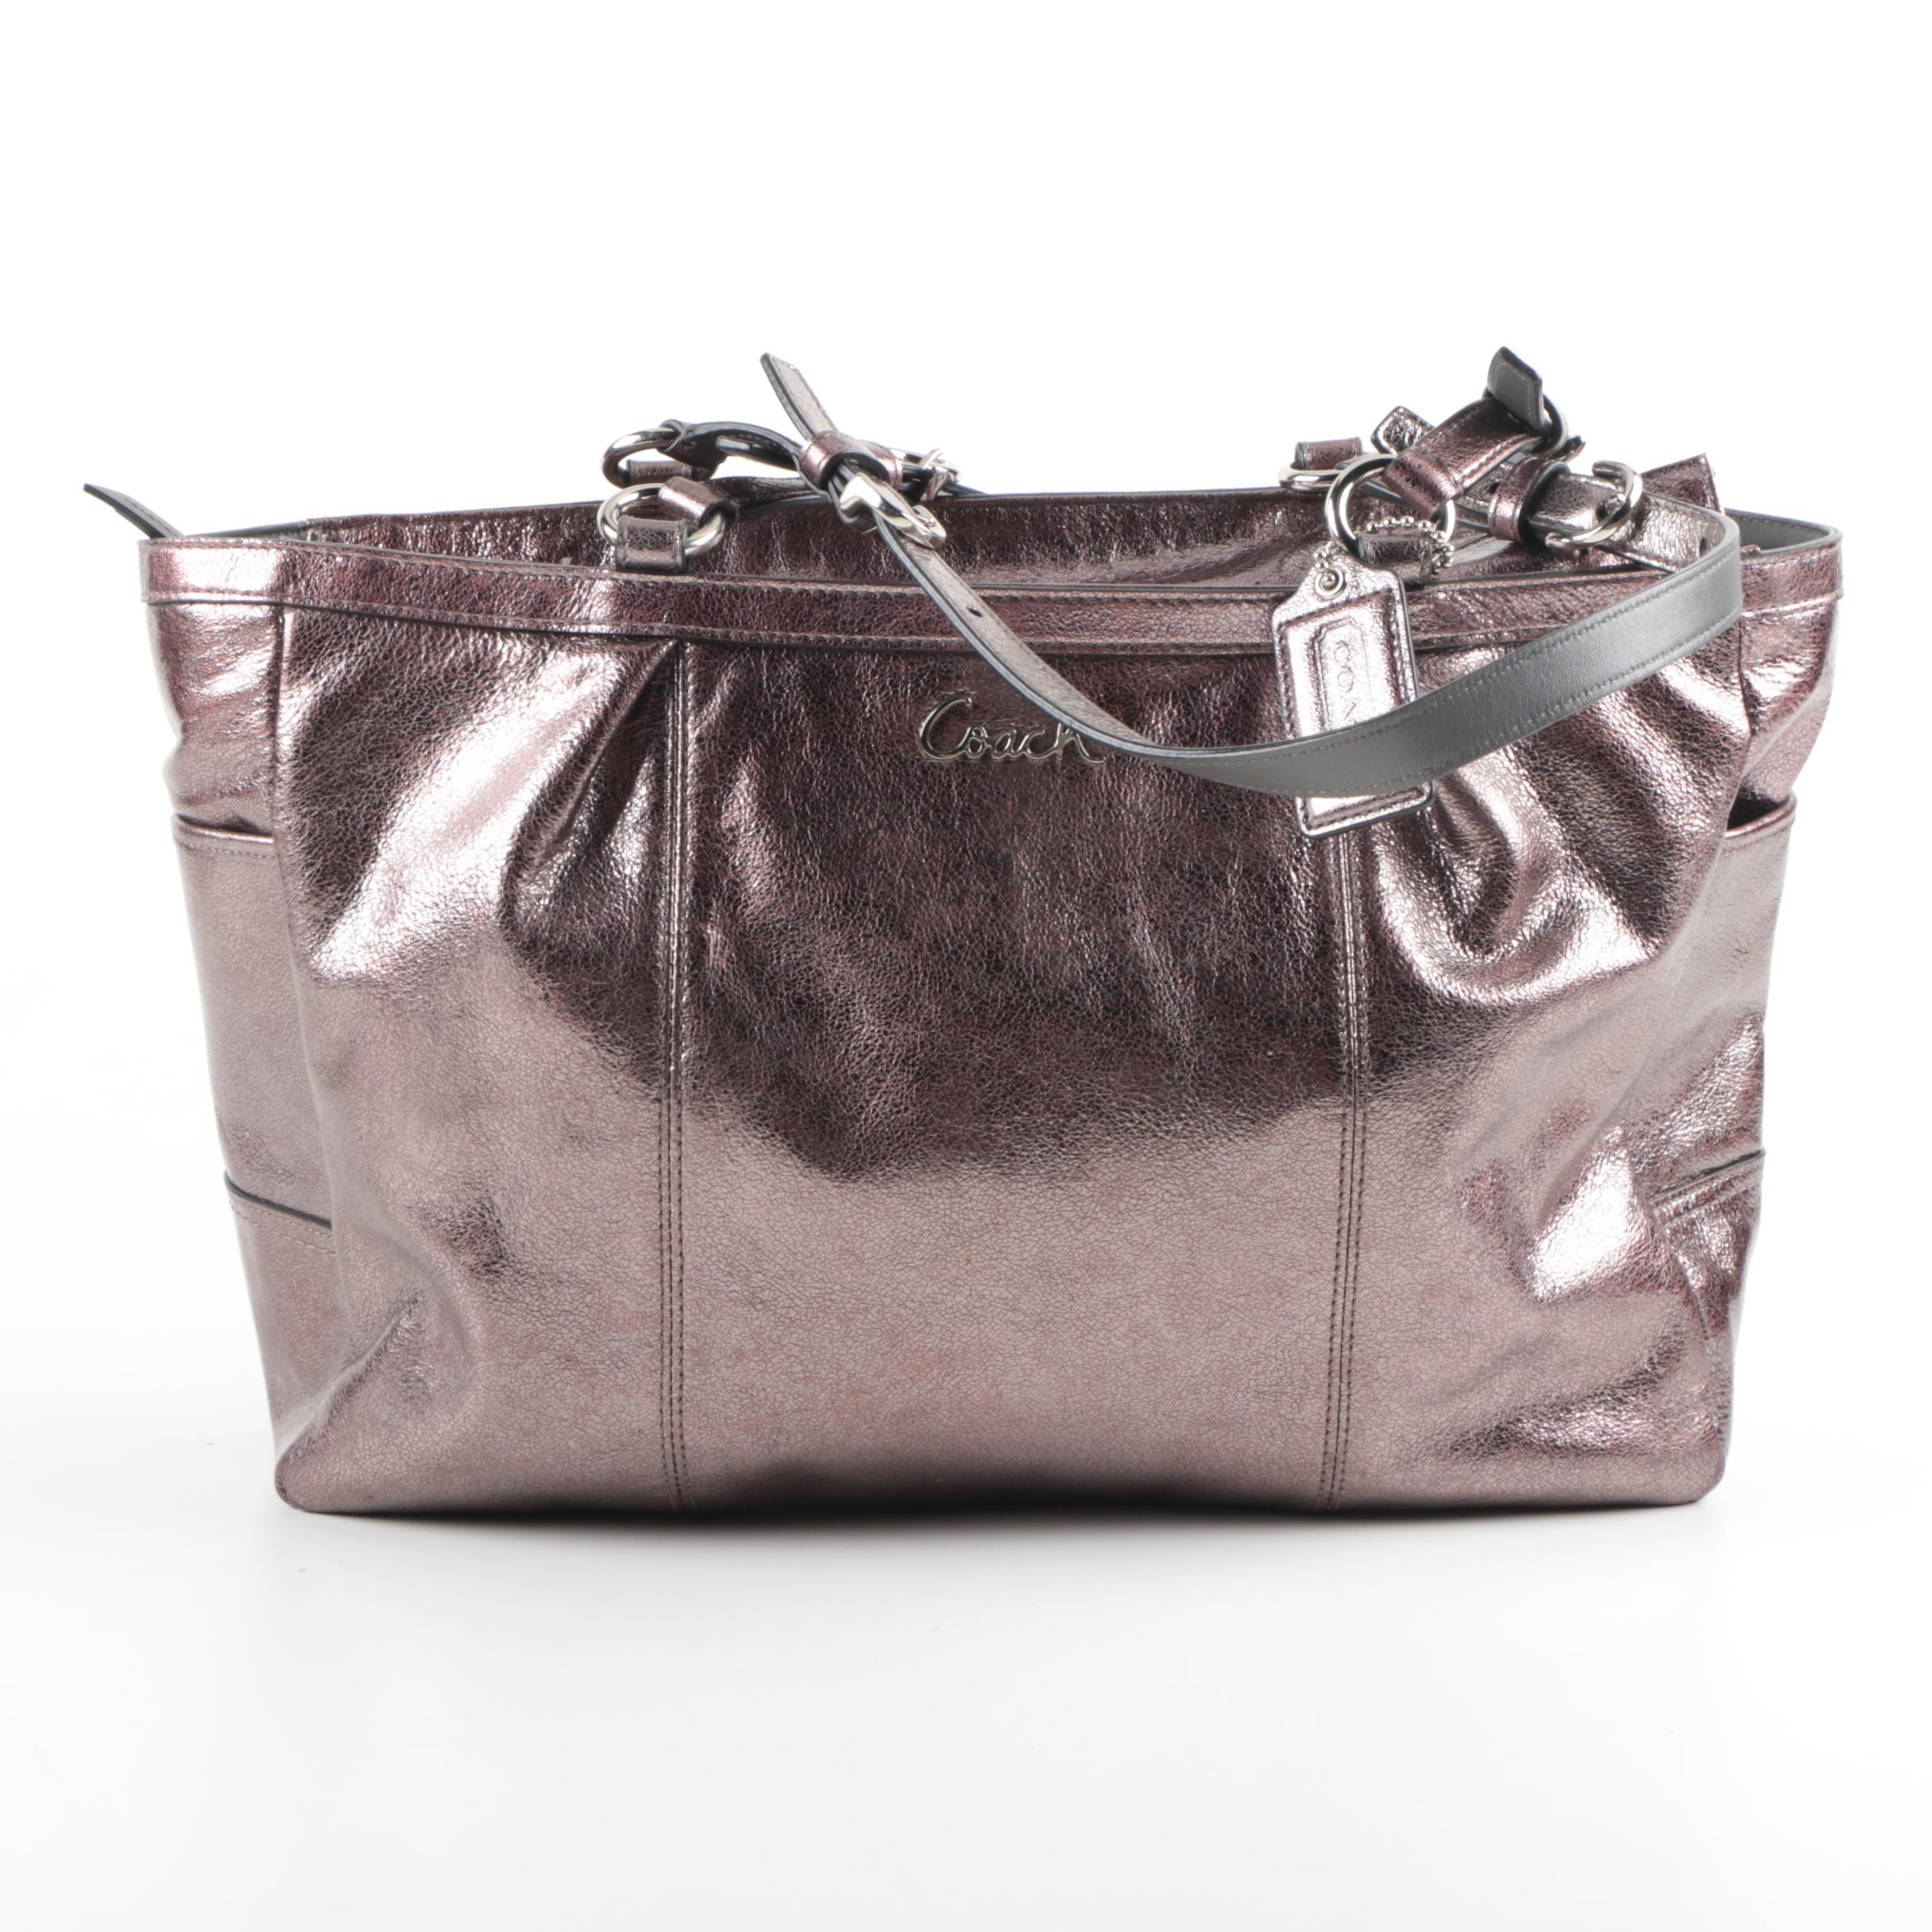 Coach Metallic Leather Gallery Tote